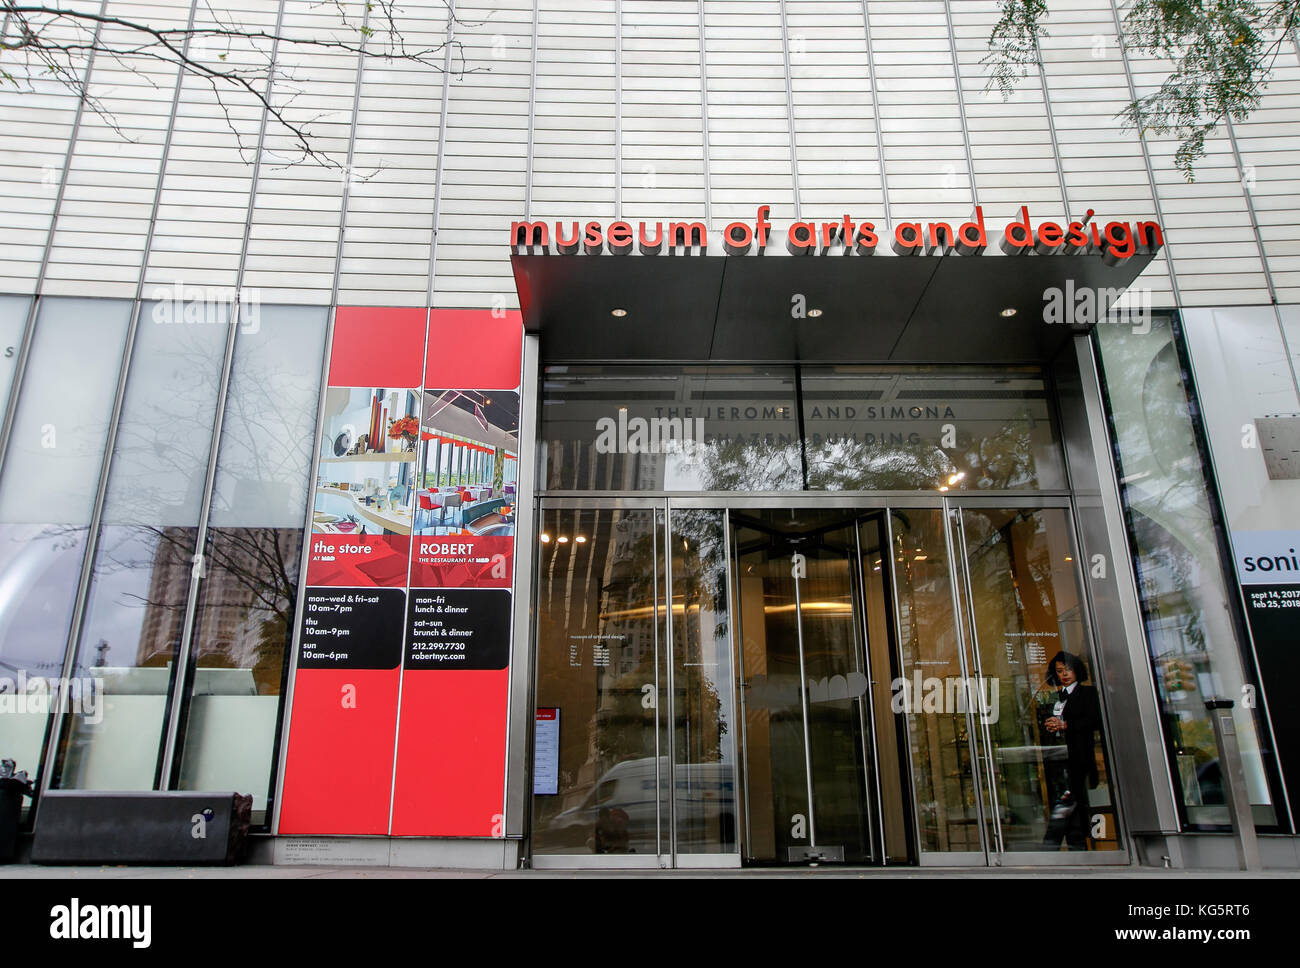 Entrance to the Museum of Arts and Design located at Columbus Circle in Manhattan. - Stock Image